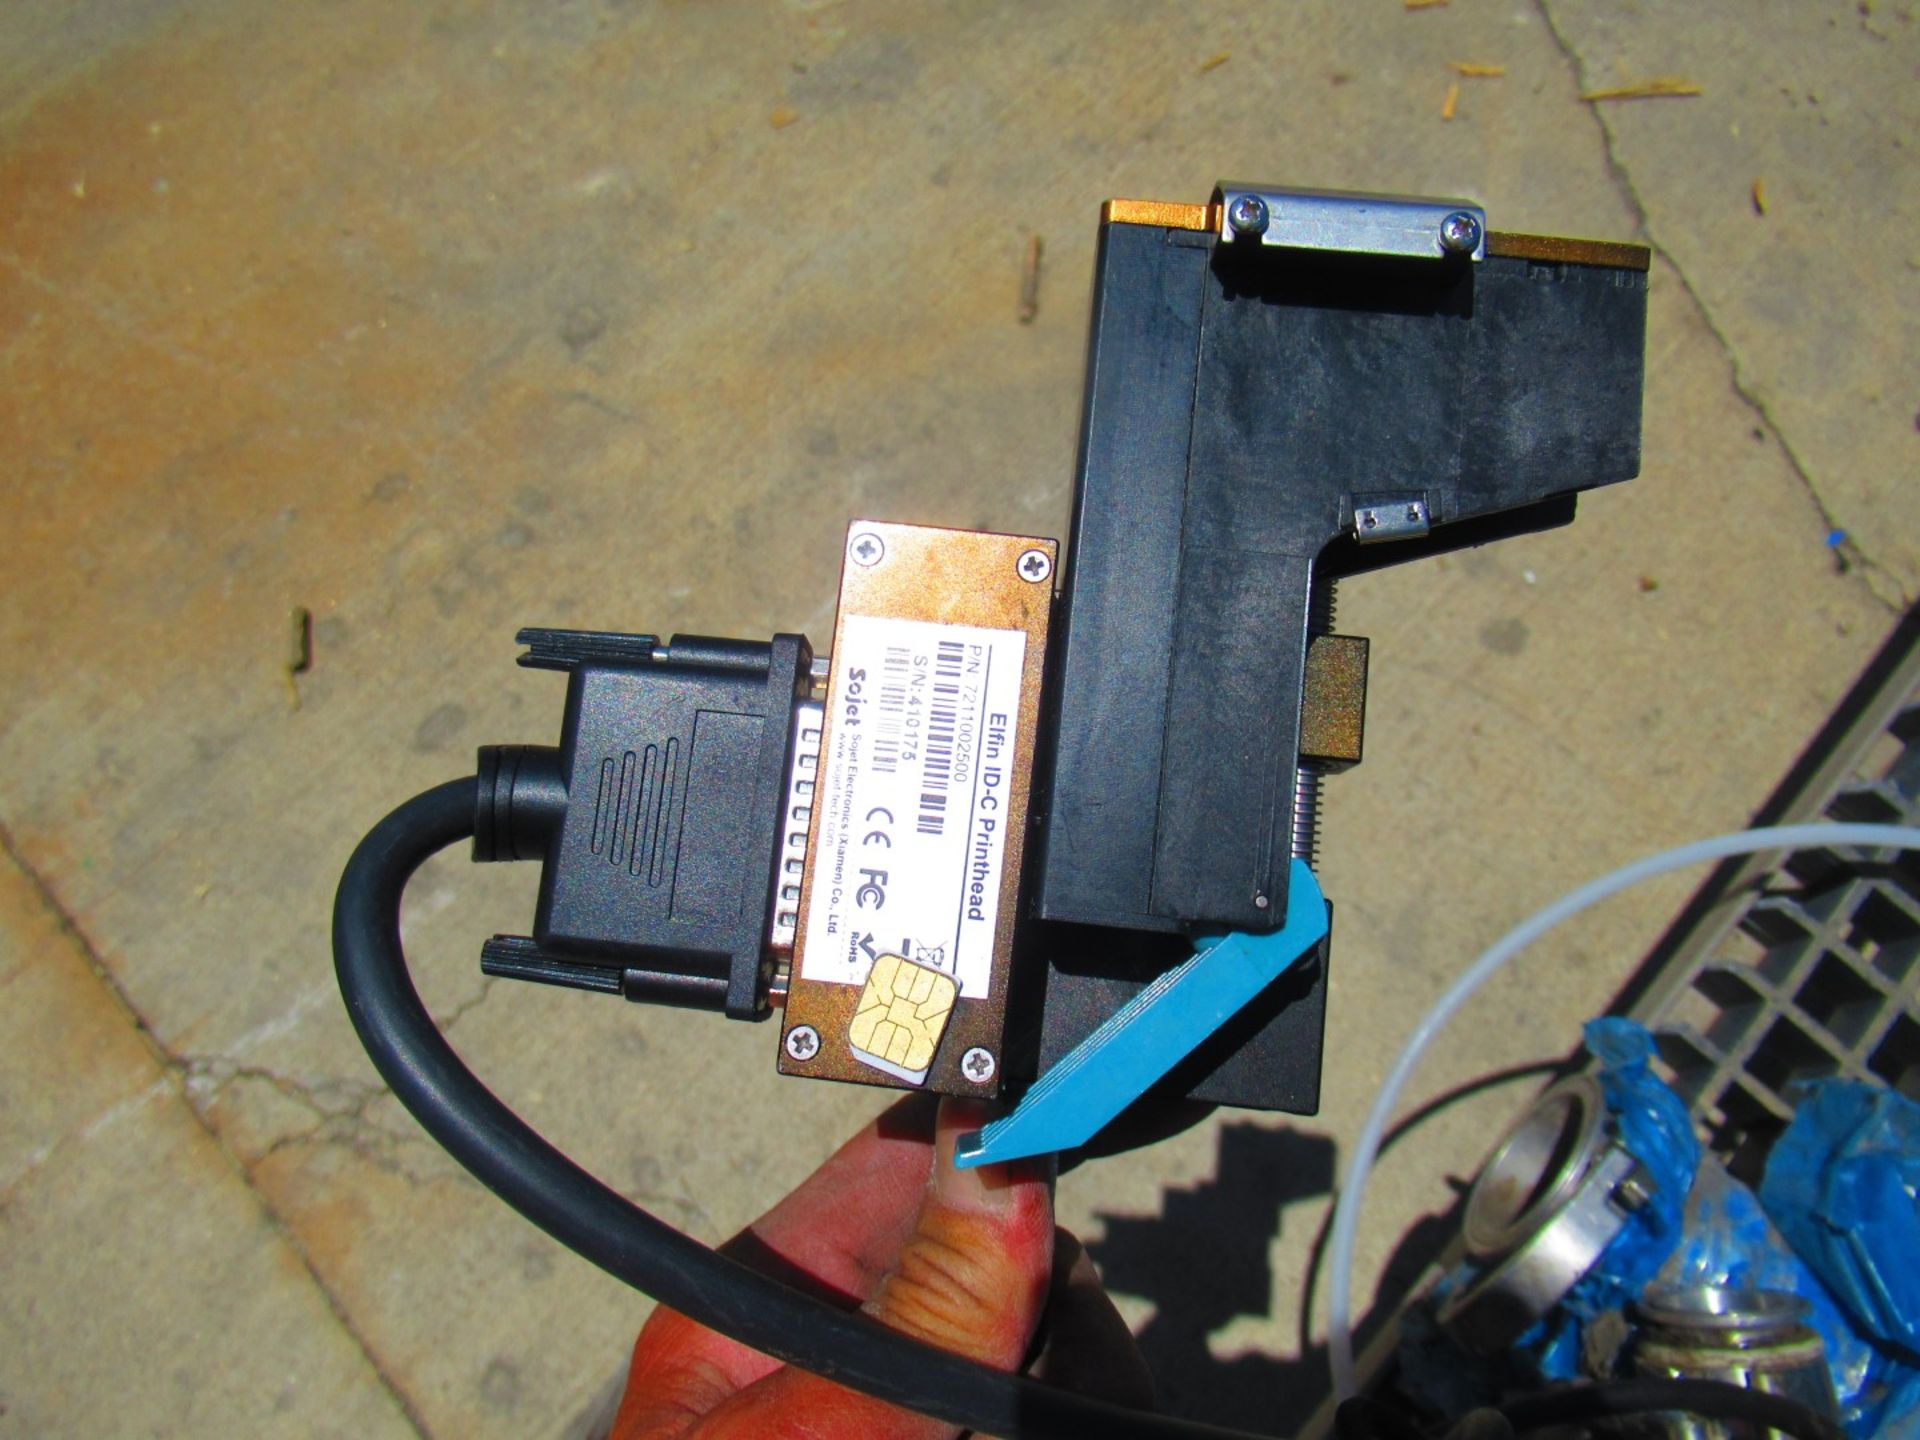 ID-C controller - Image 3 of 4